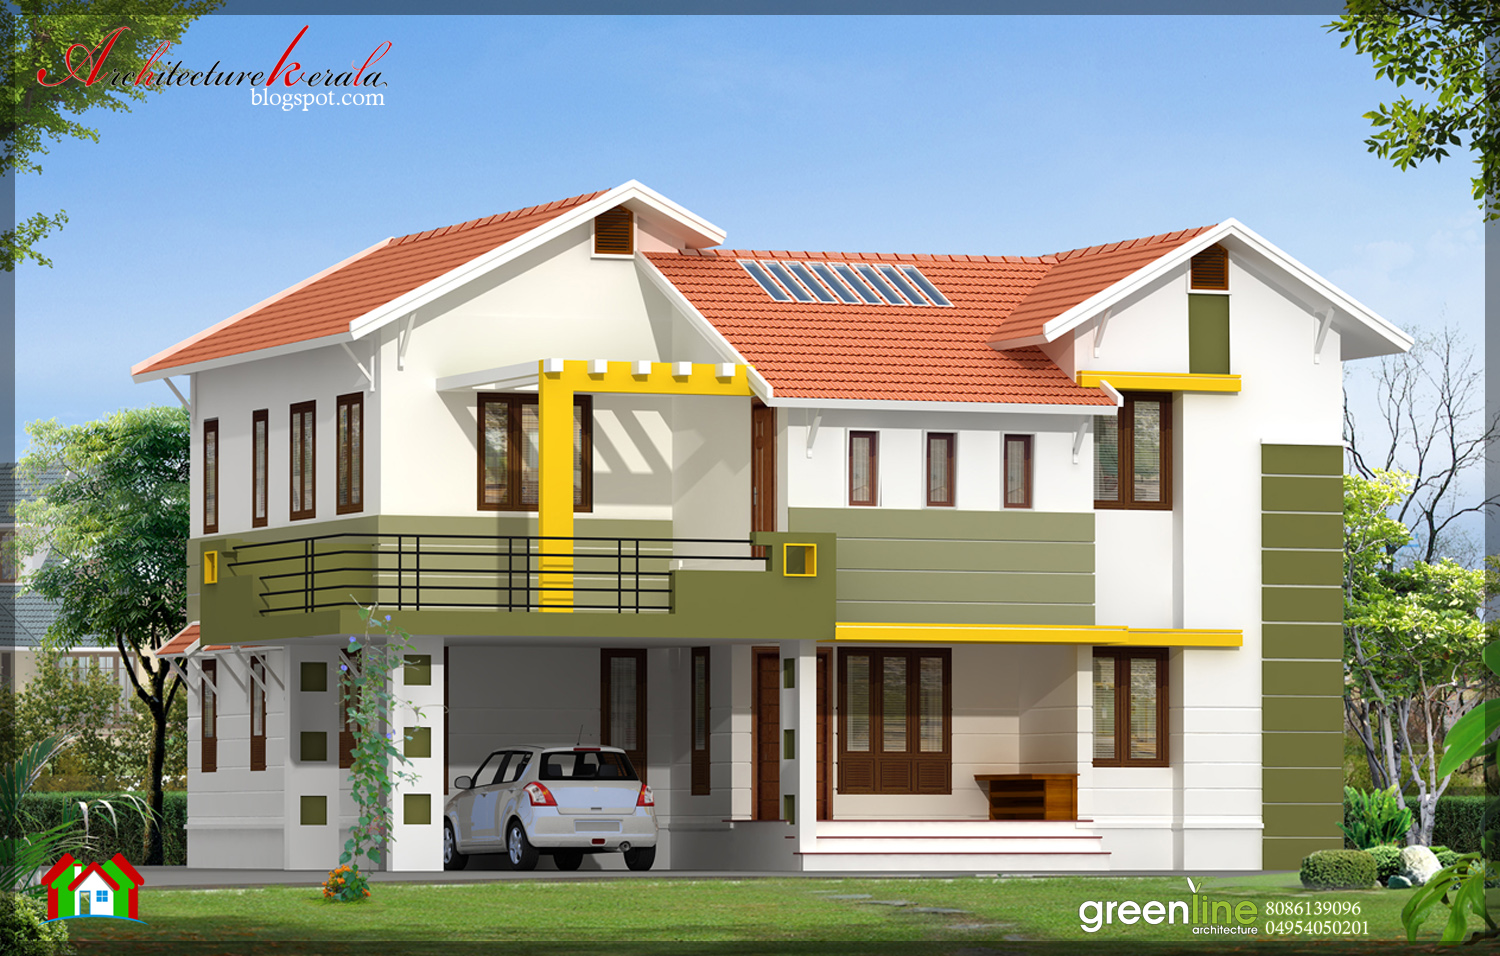 Architecture kerala 4 bhk contemporary style indian home for Home designs indian style